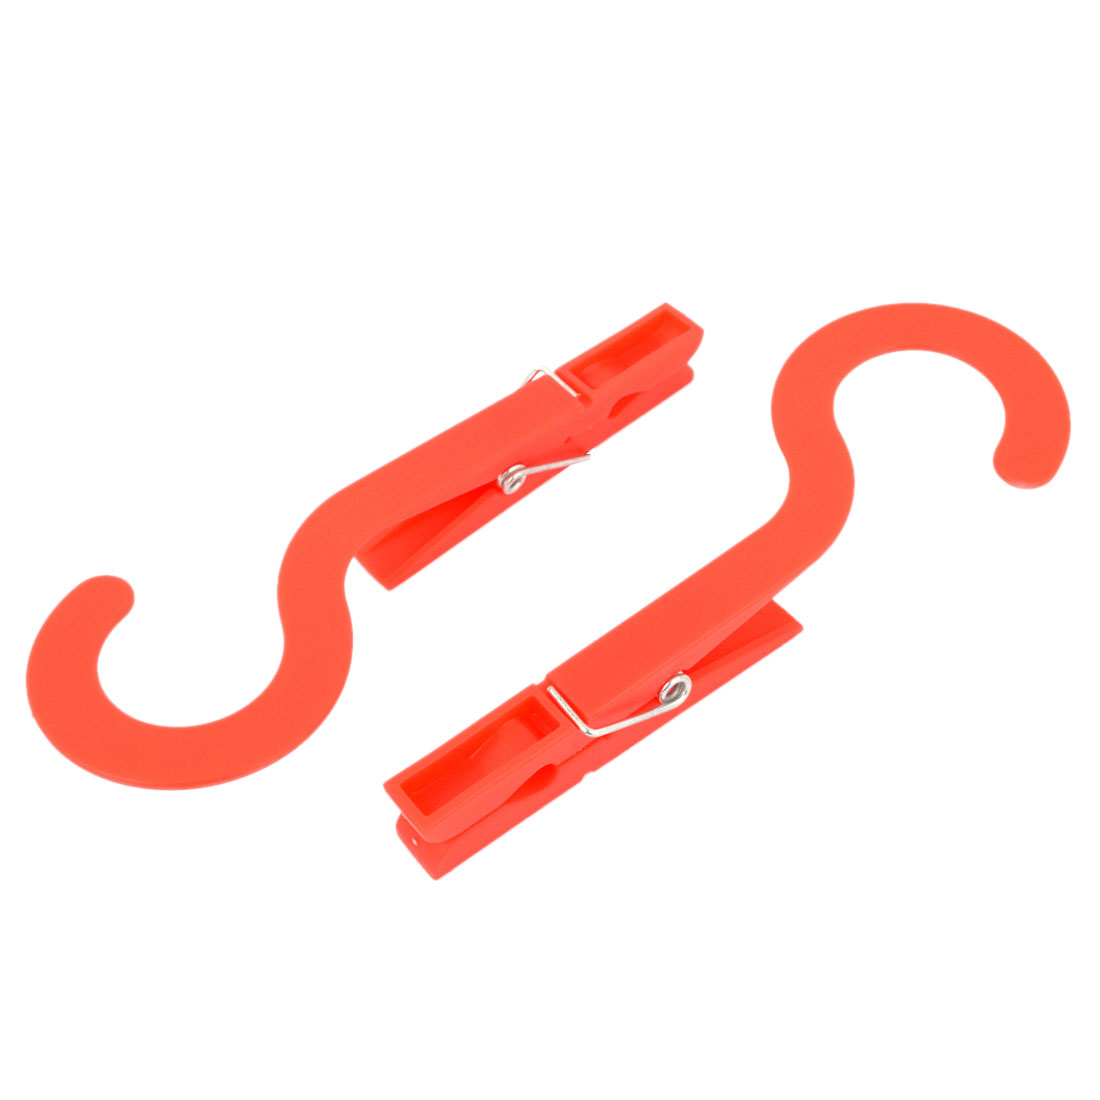 Red Plastic Spring Loaded Laundry Clothes Peg Pin Hanger Hook Clips Clamps 2 Pcs